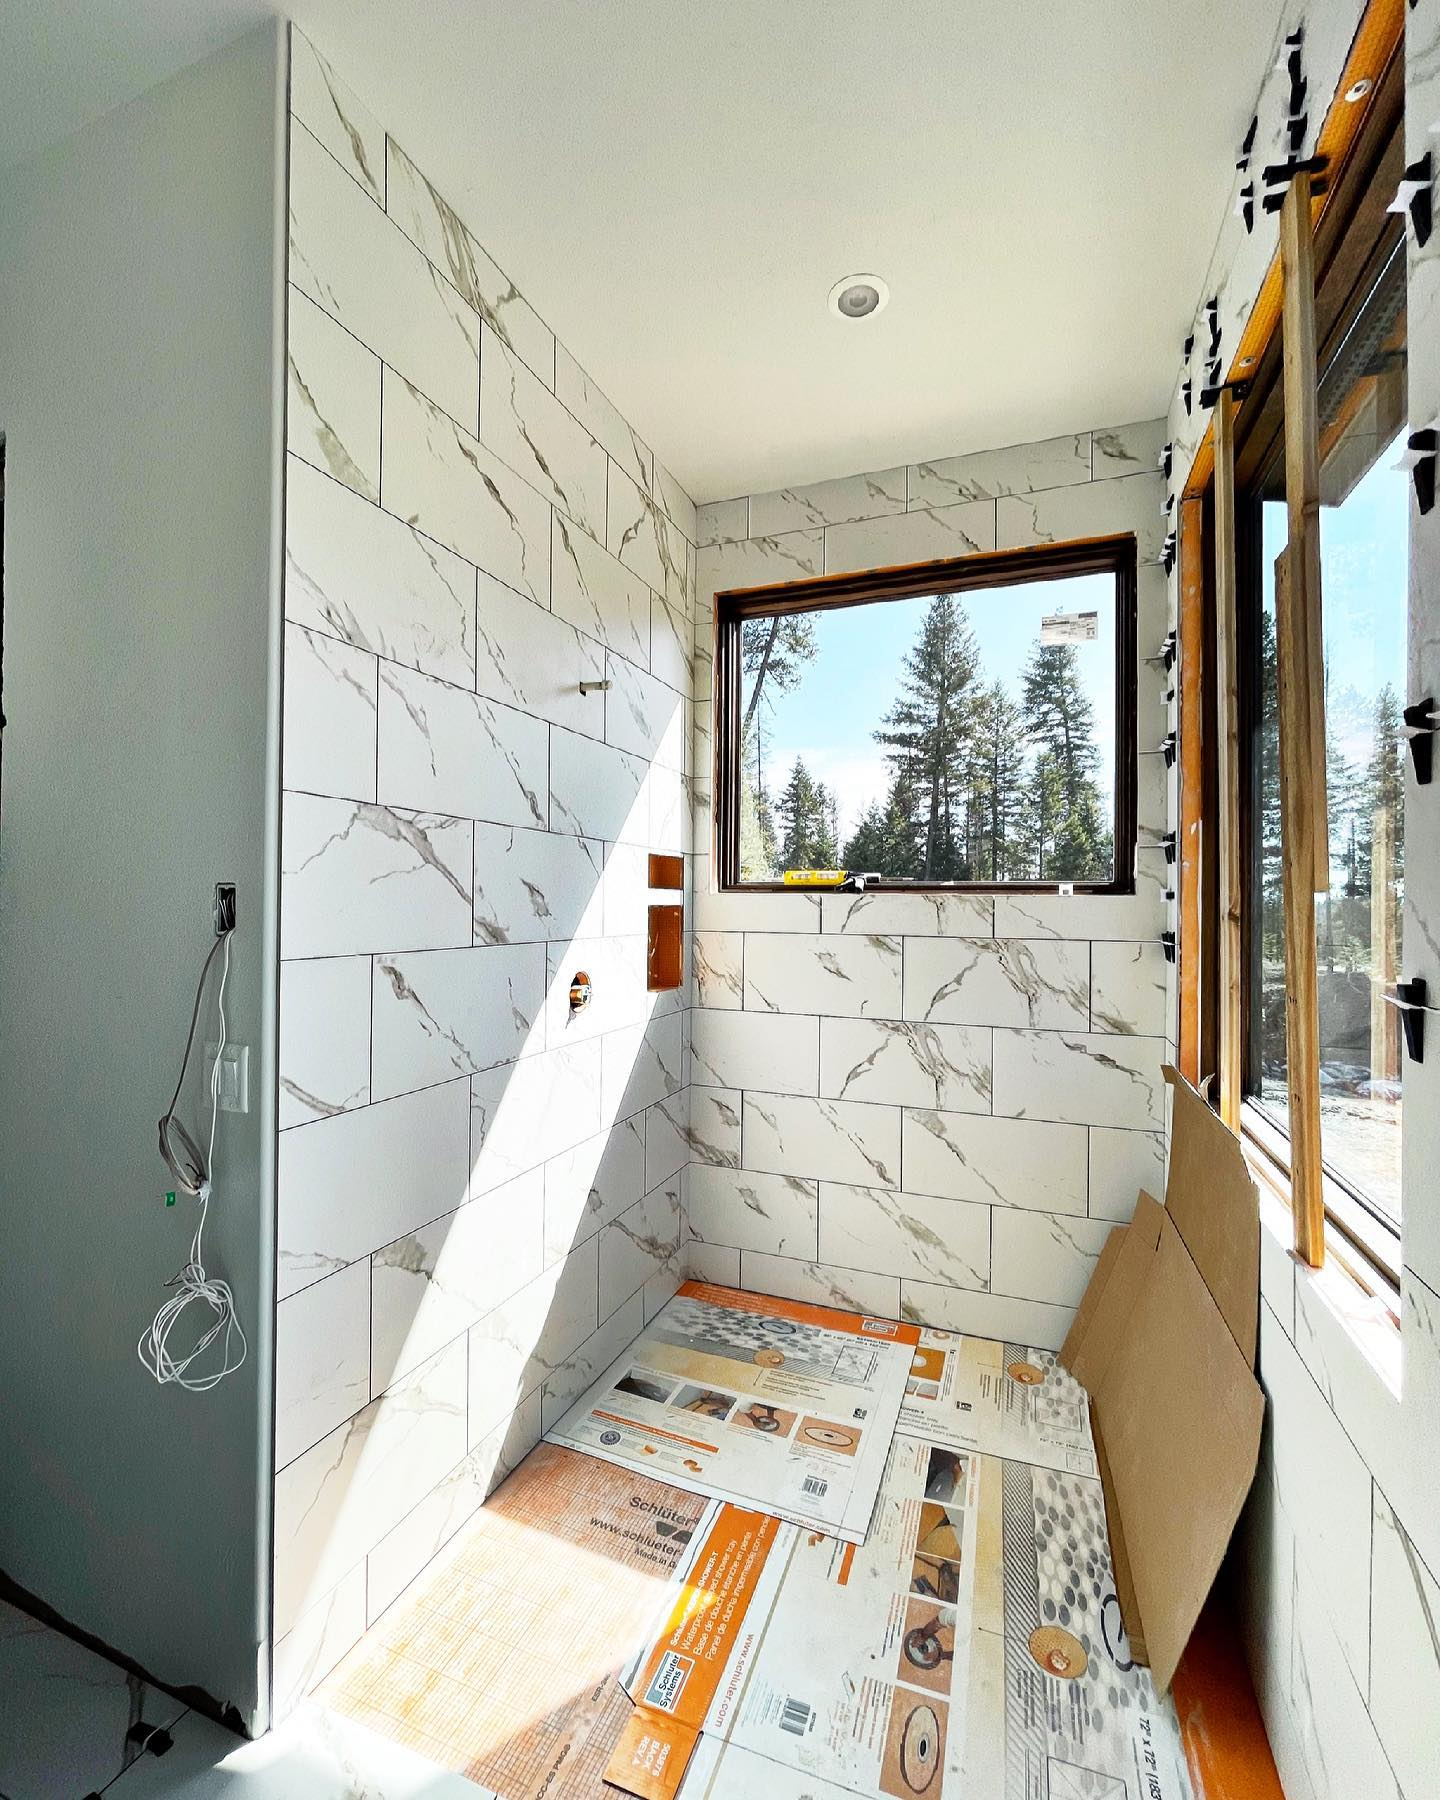 Work in progress. I can't wait to show this master bathroom when it's complete. It's different than anything we've done! whitefish custom home builder